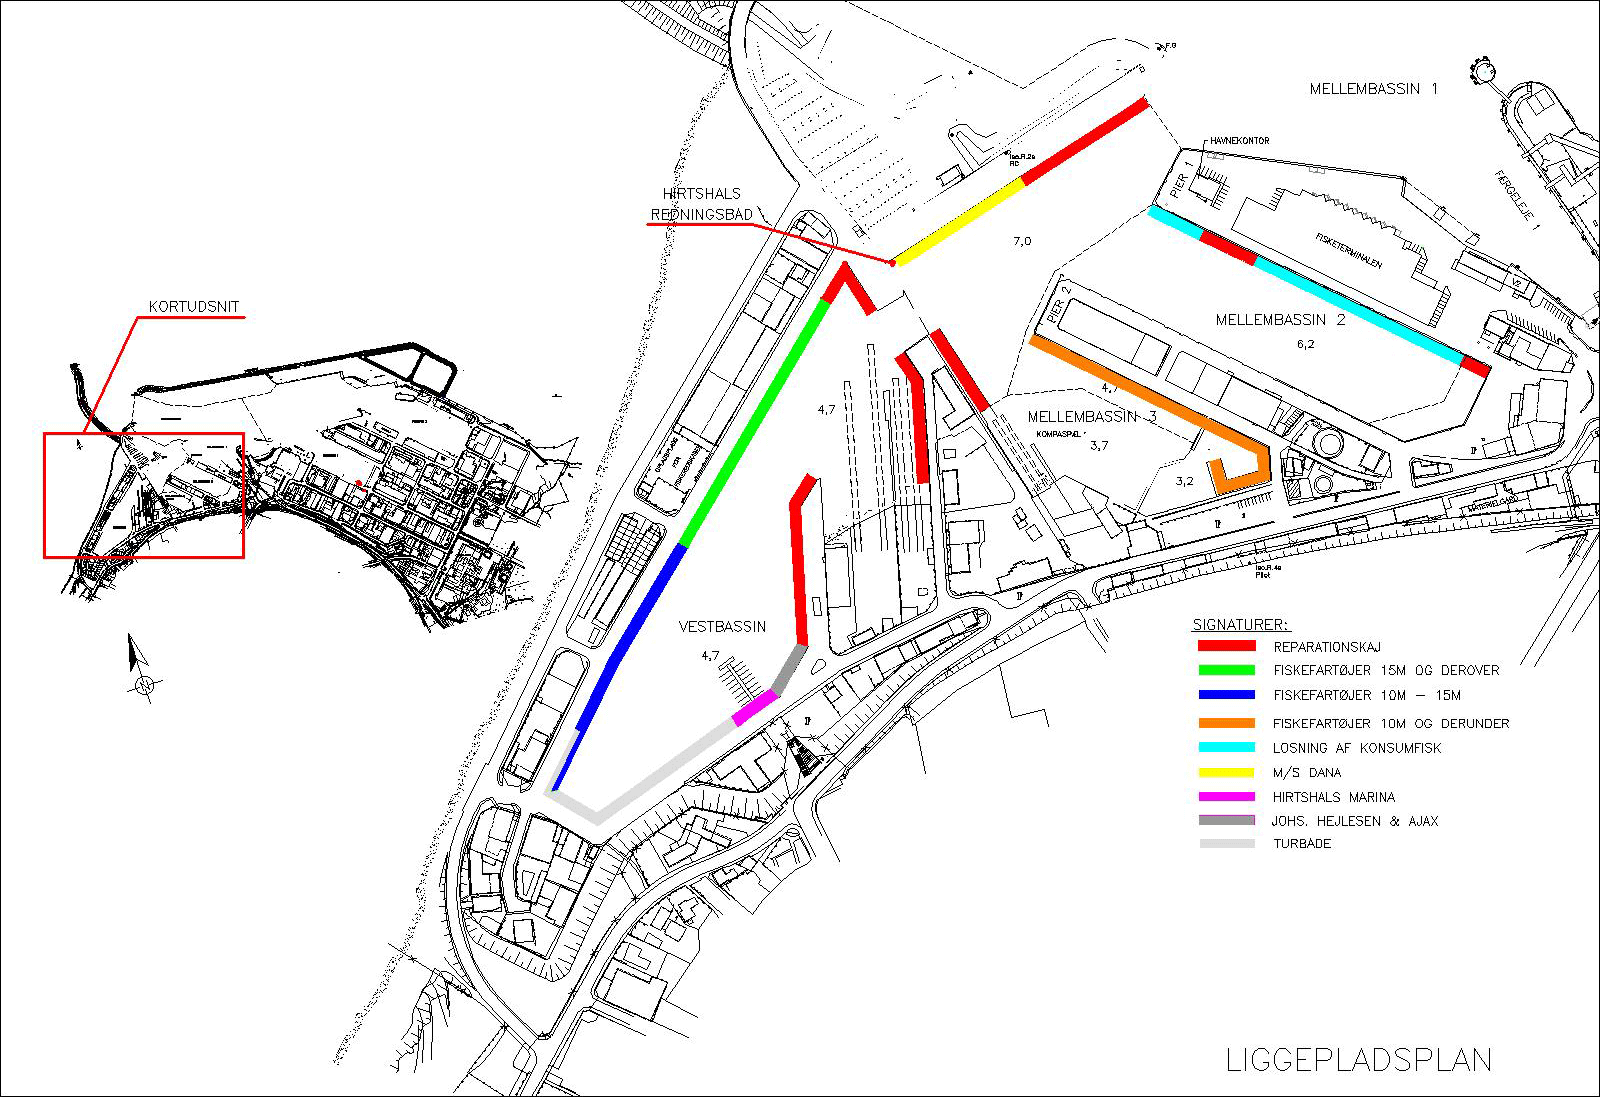 The port's berth plan